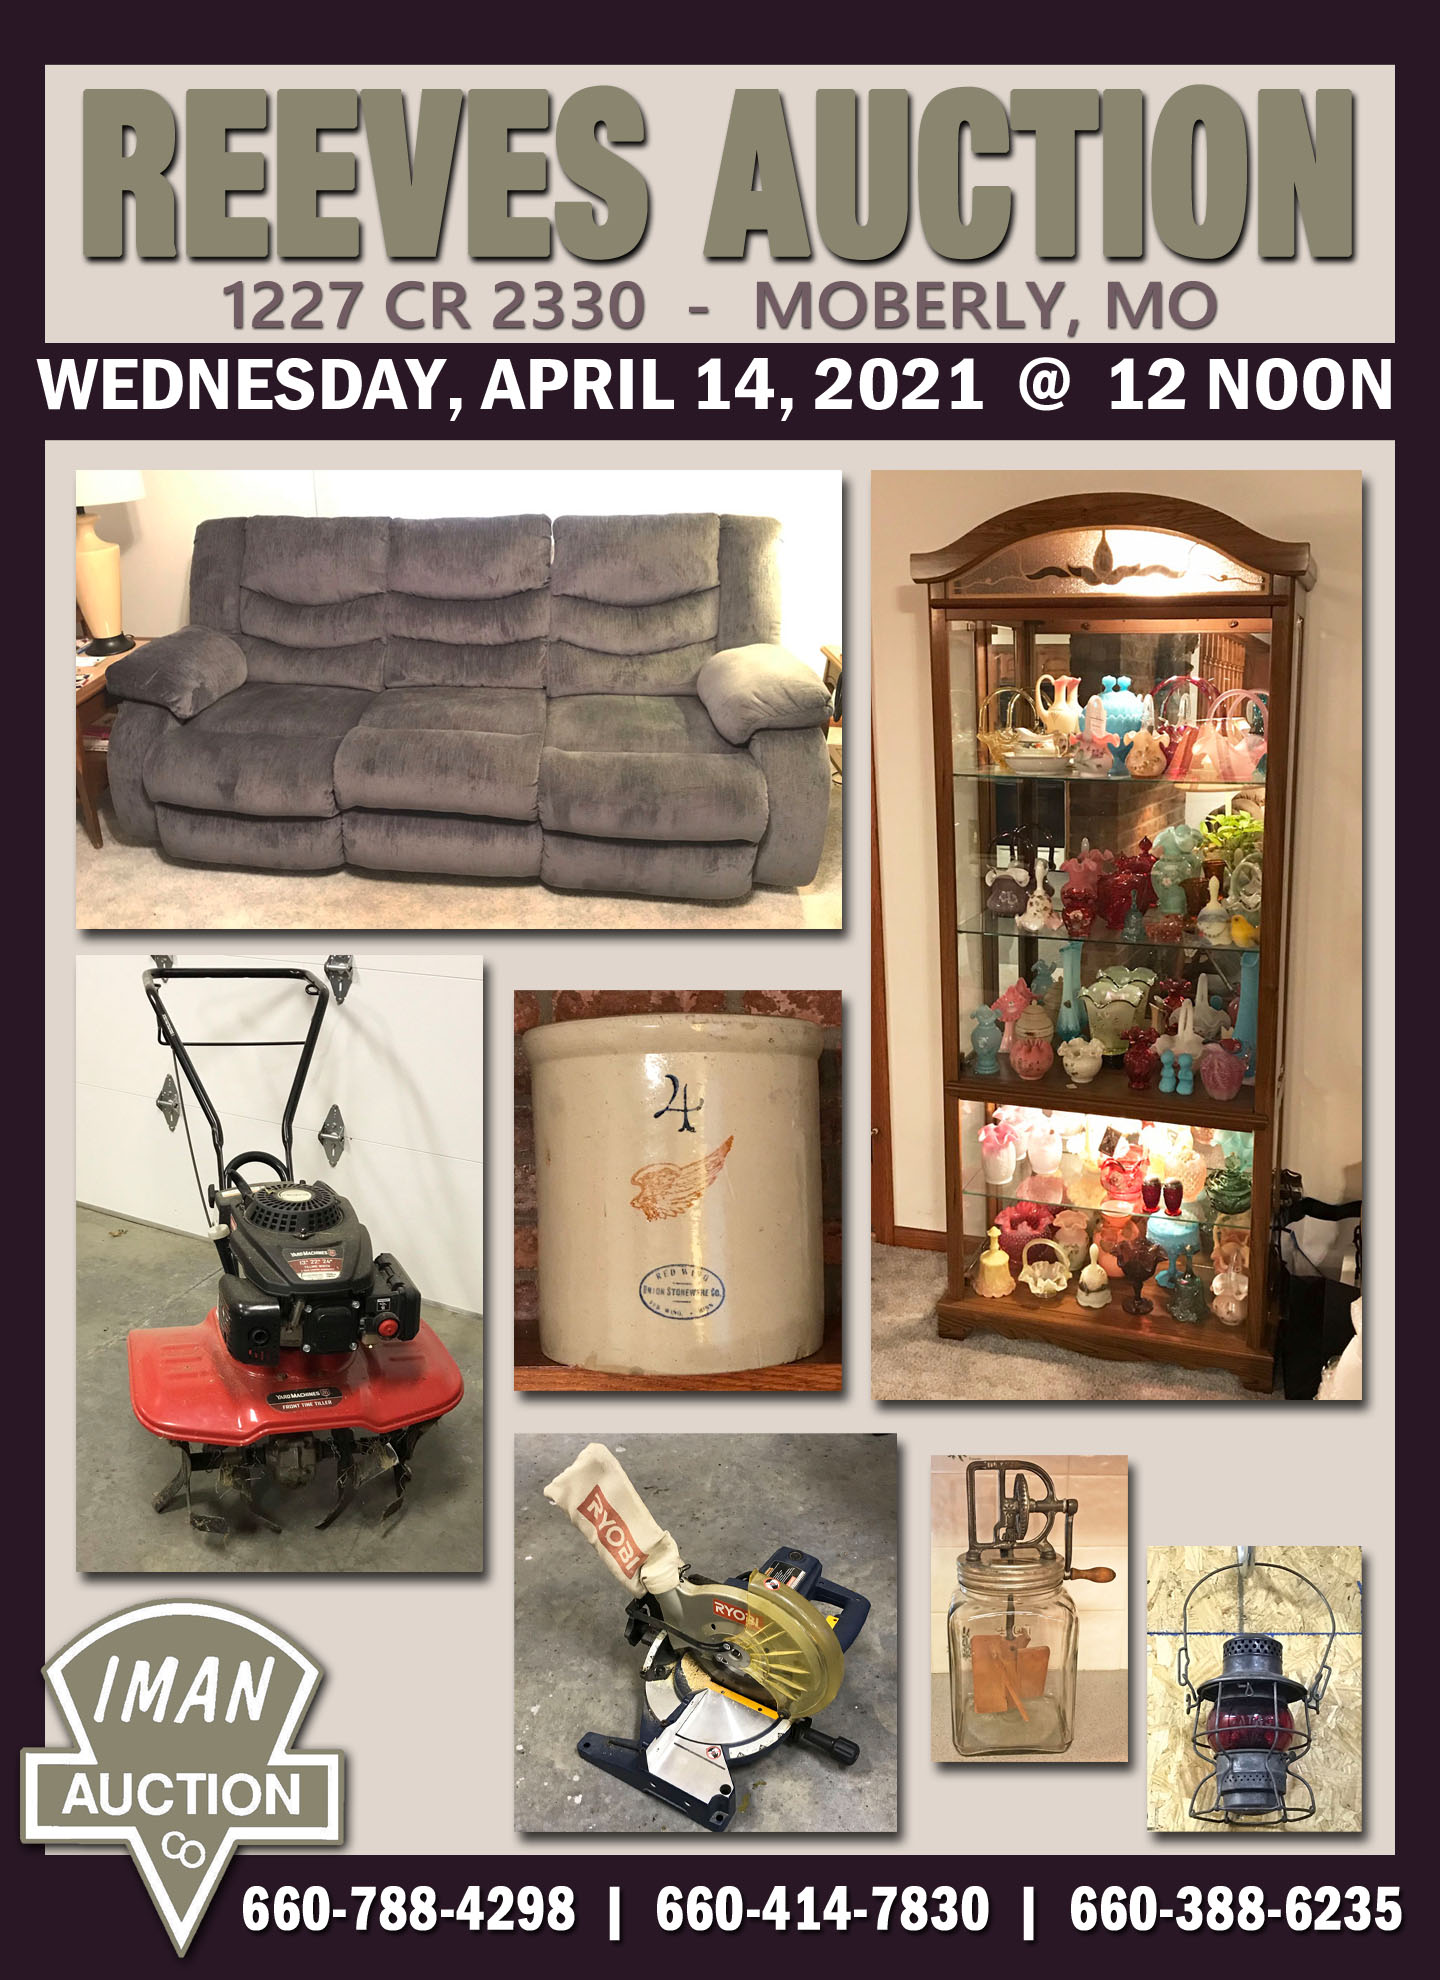 REEVES AUCTION